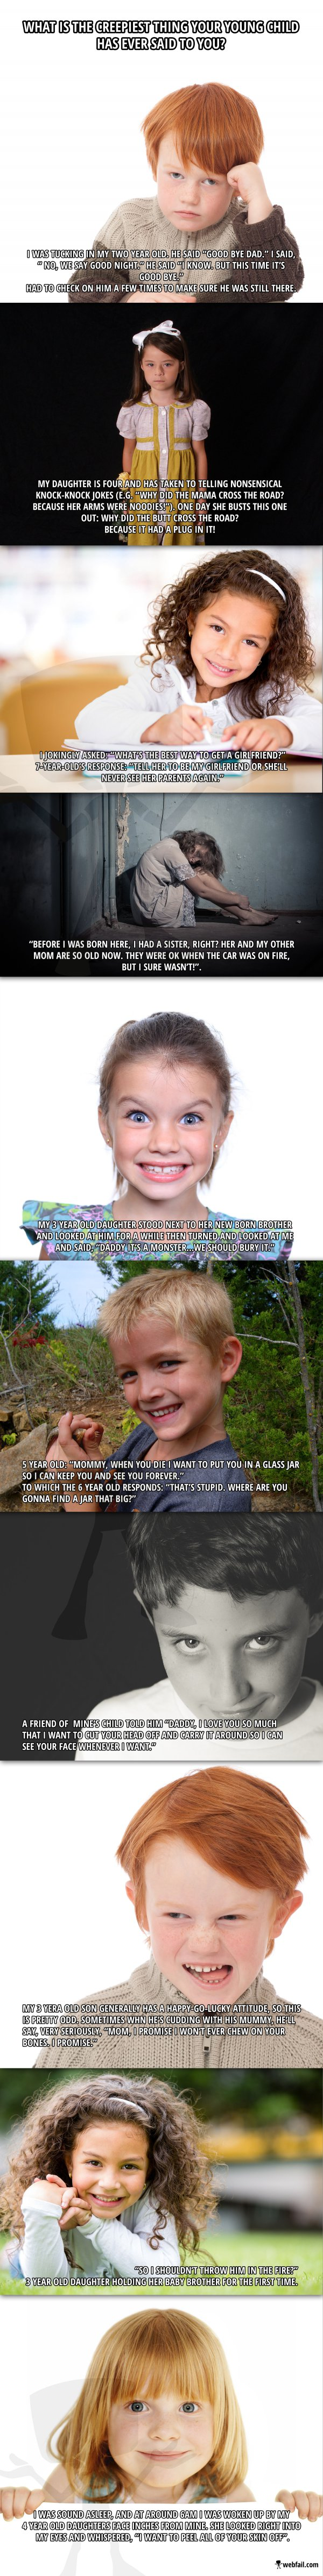 The creepiest thing your child ever said to you - WTF/Fun Picture